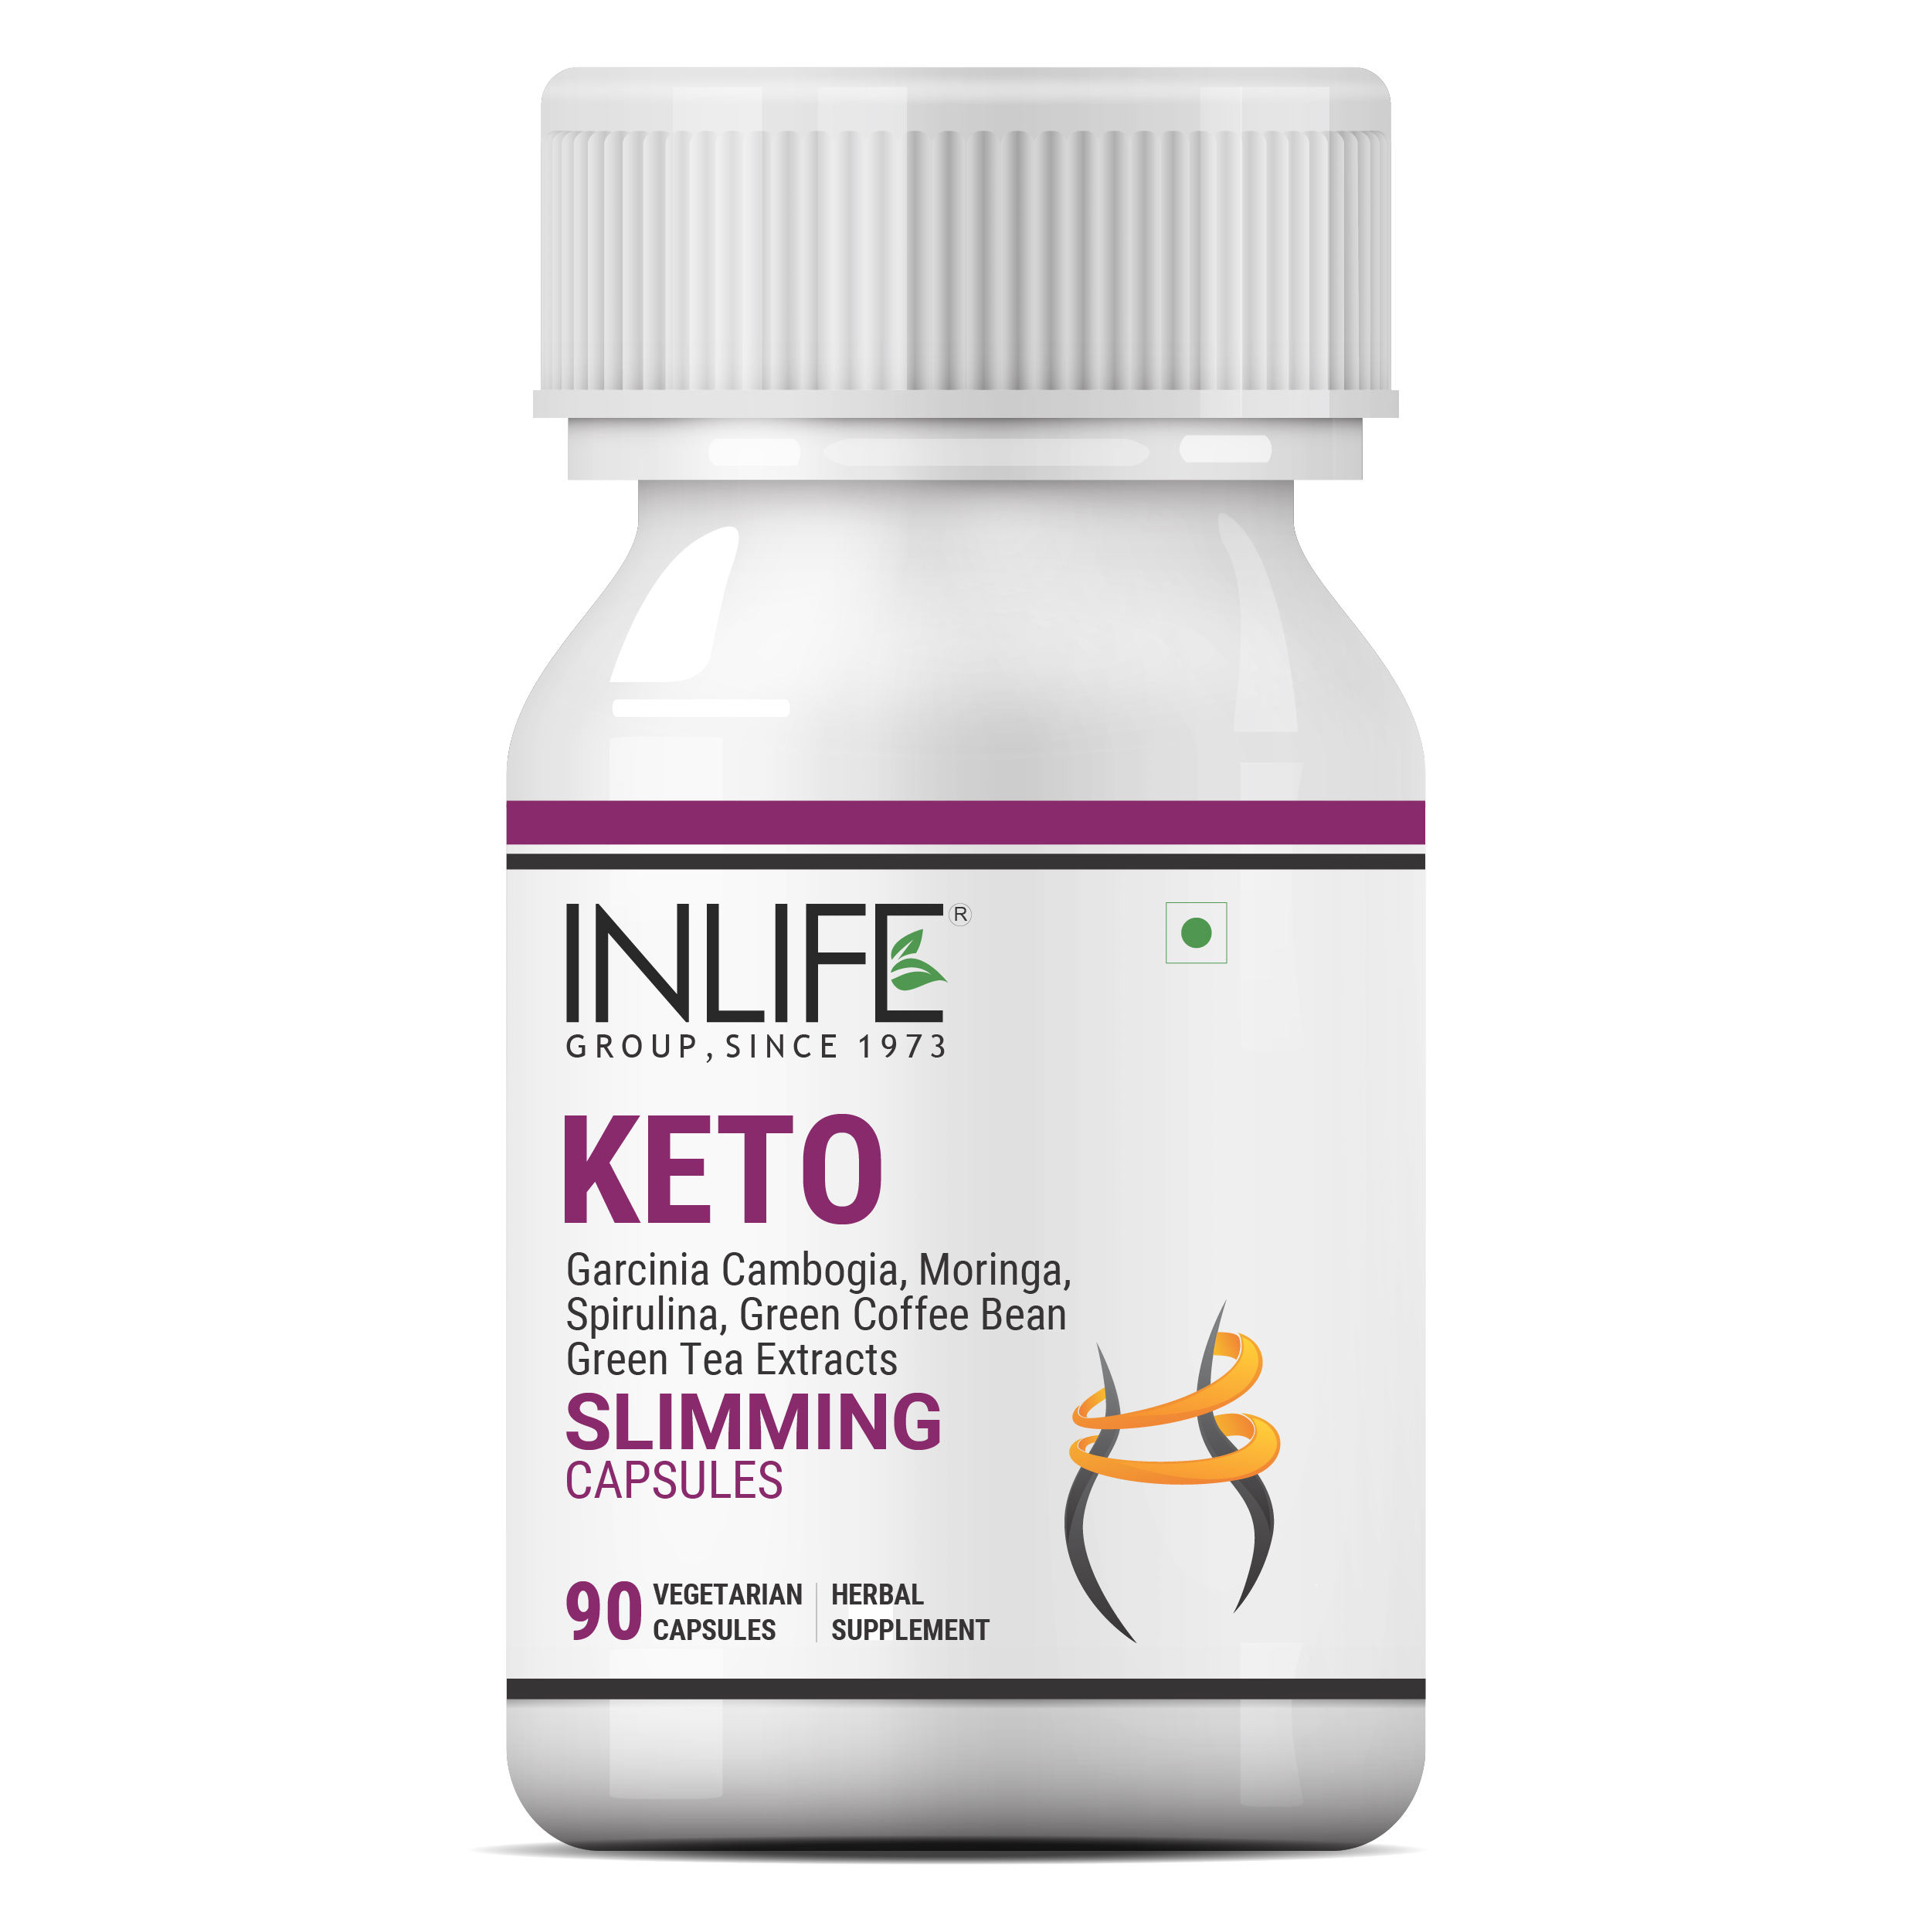 INLIFE Keto Slimming Weight Loss Diet Pills Supplement - 90 Vegetarian Capsules